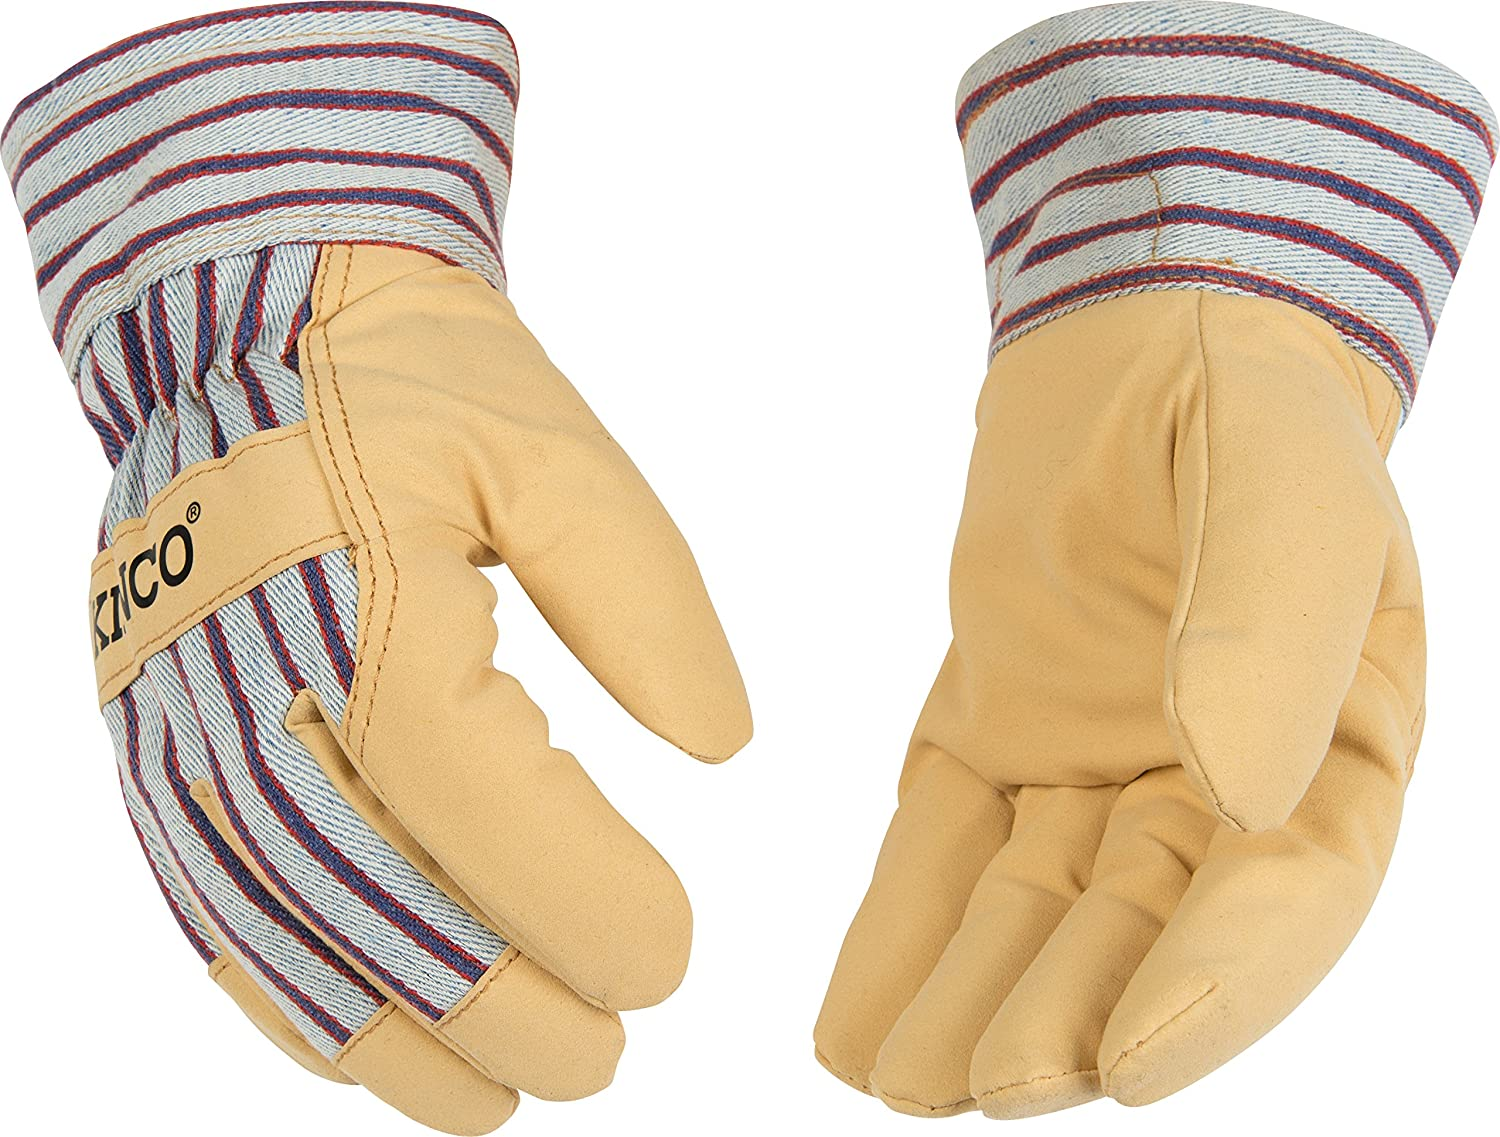 Kinco 1927Y Thermal Heatkeep Lined Youth's Ultra Suede Cold Weather Glove, Work, 7 12 Ages (Pack of 12 Pairs) by KINCO INTERNATIONAL B00APL2KE8